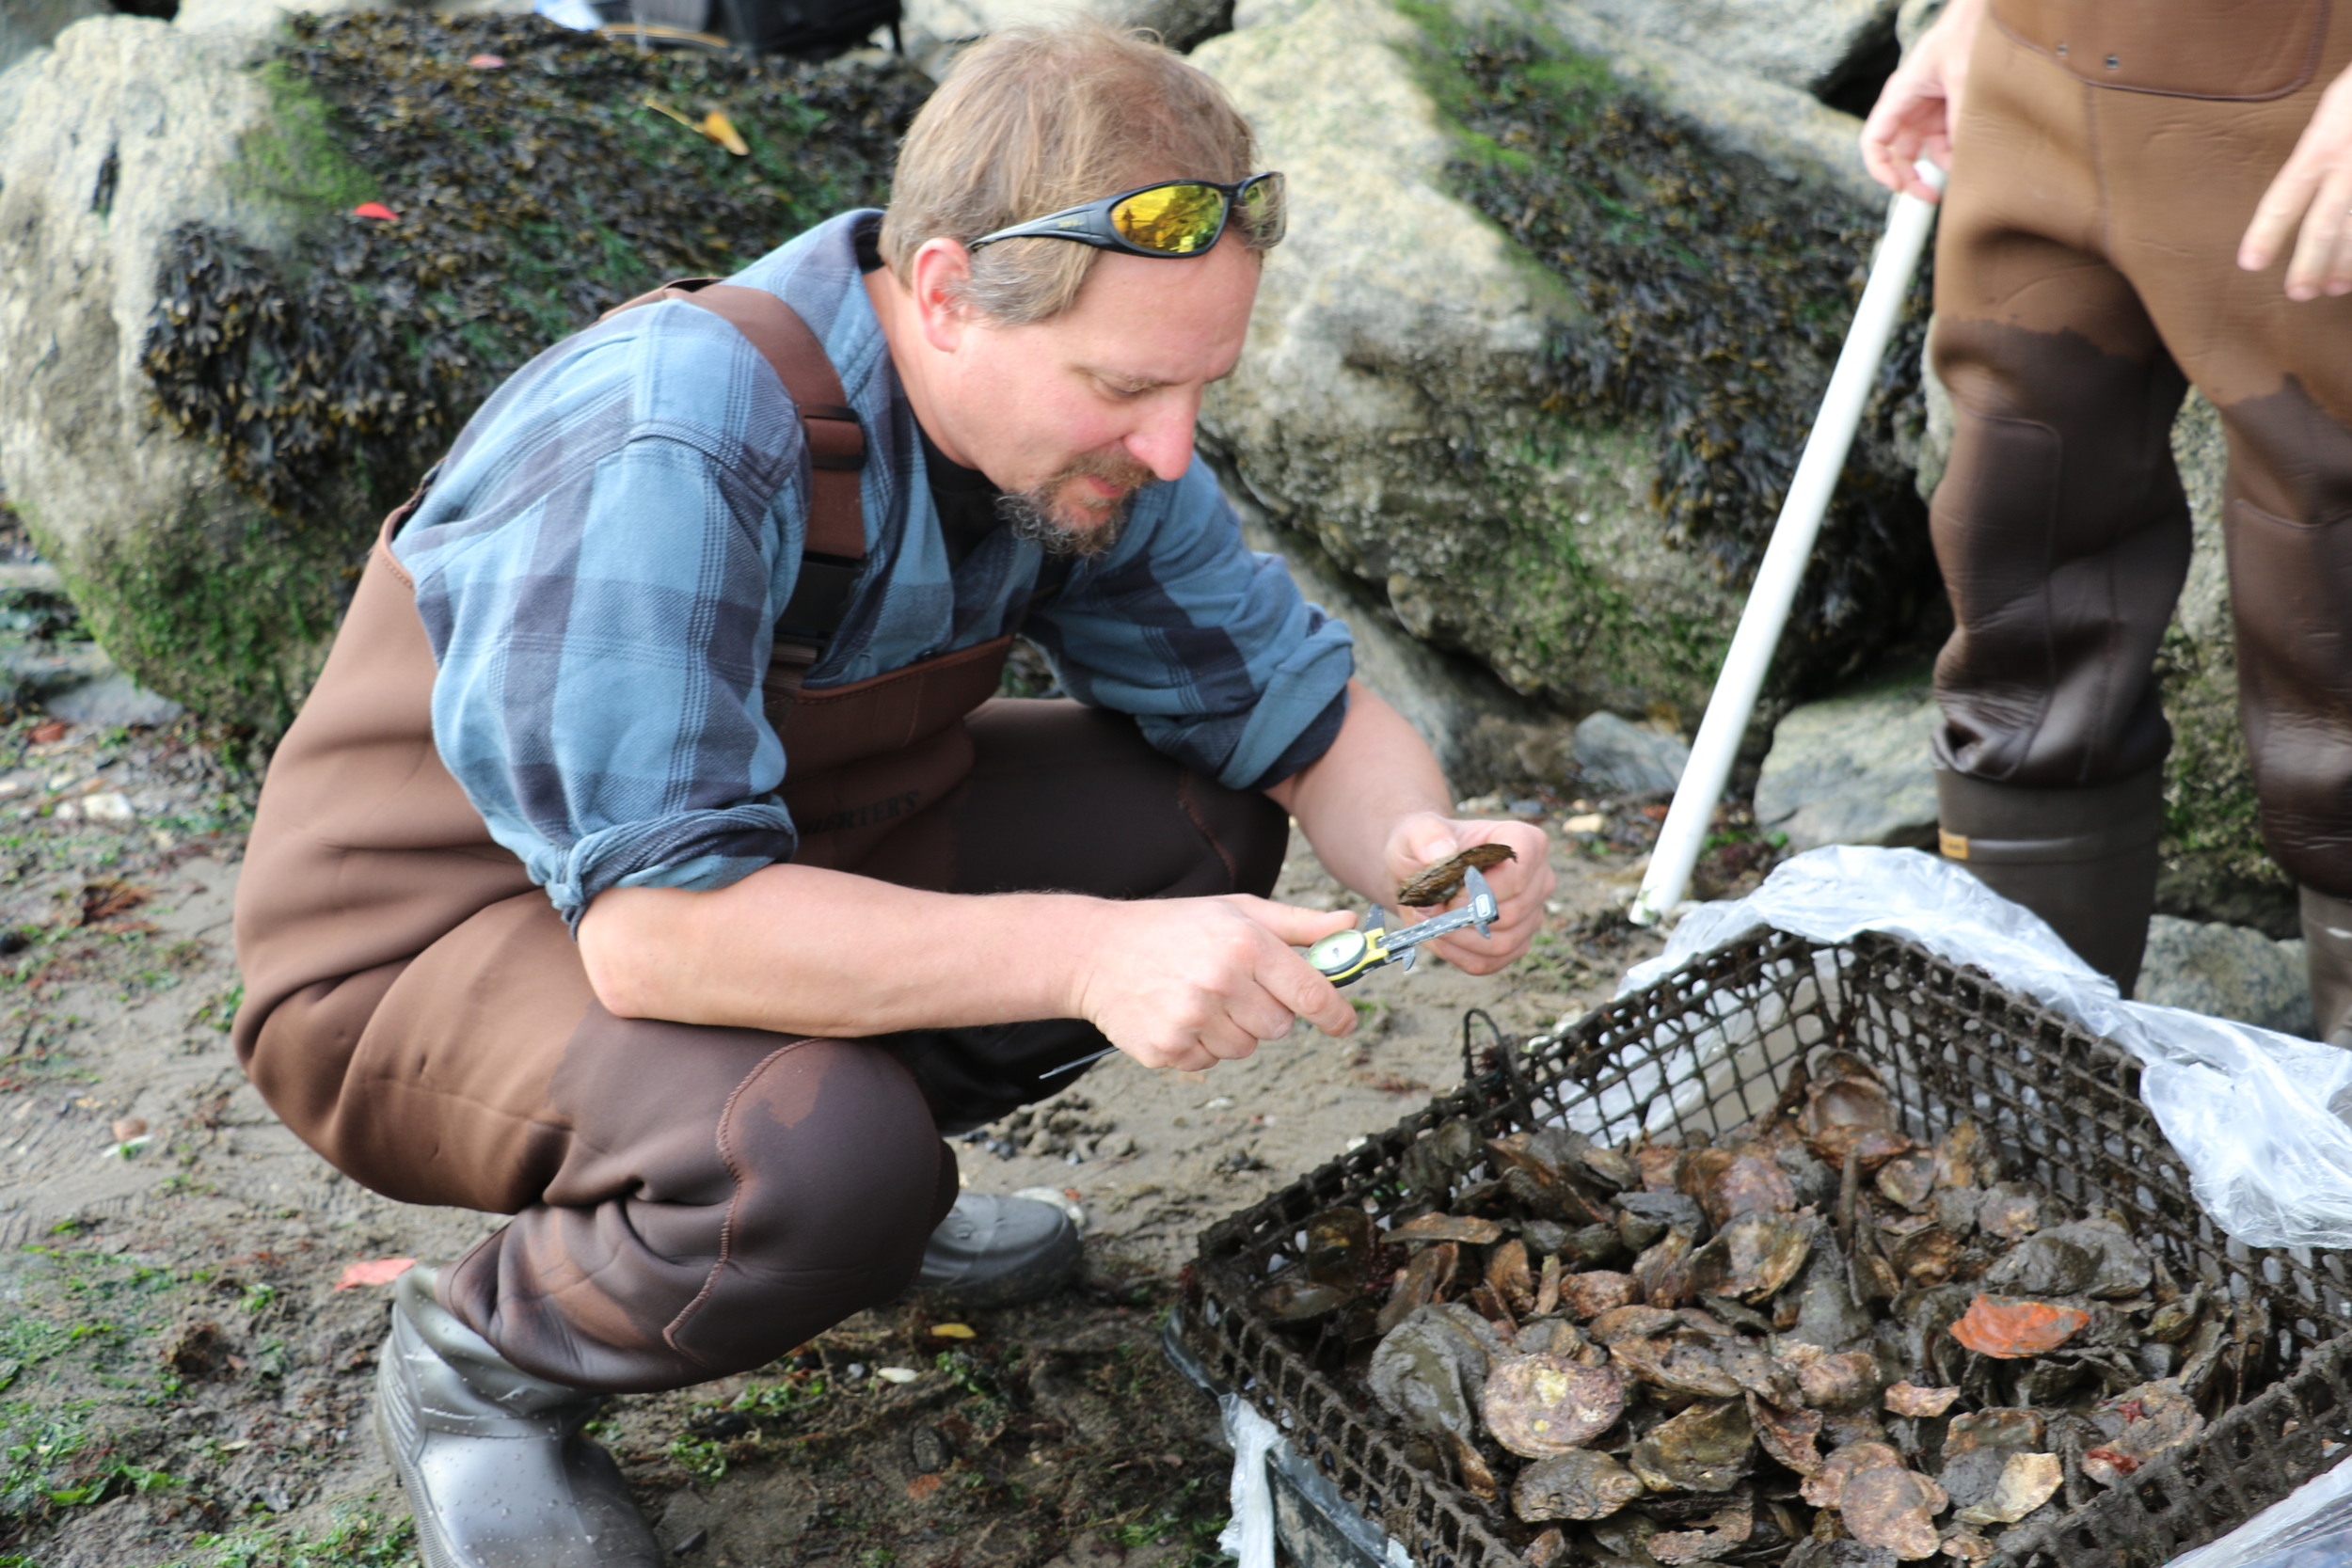 Measuring the Size of Oysters, Photo Credit: Liz Summit, 2015